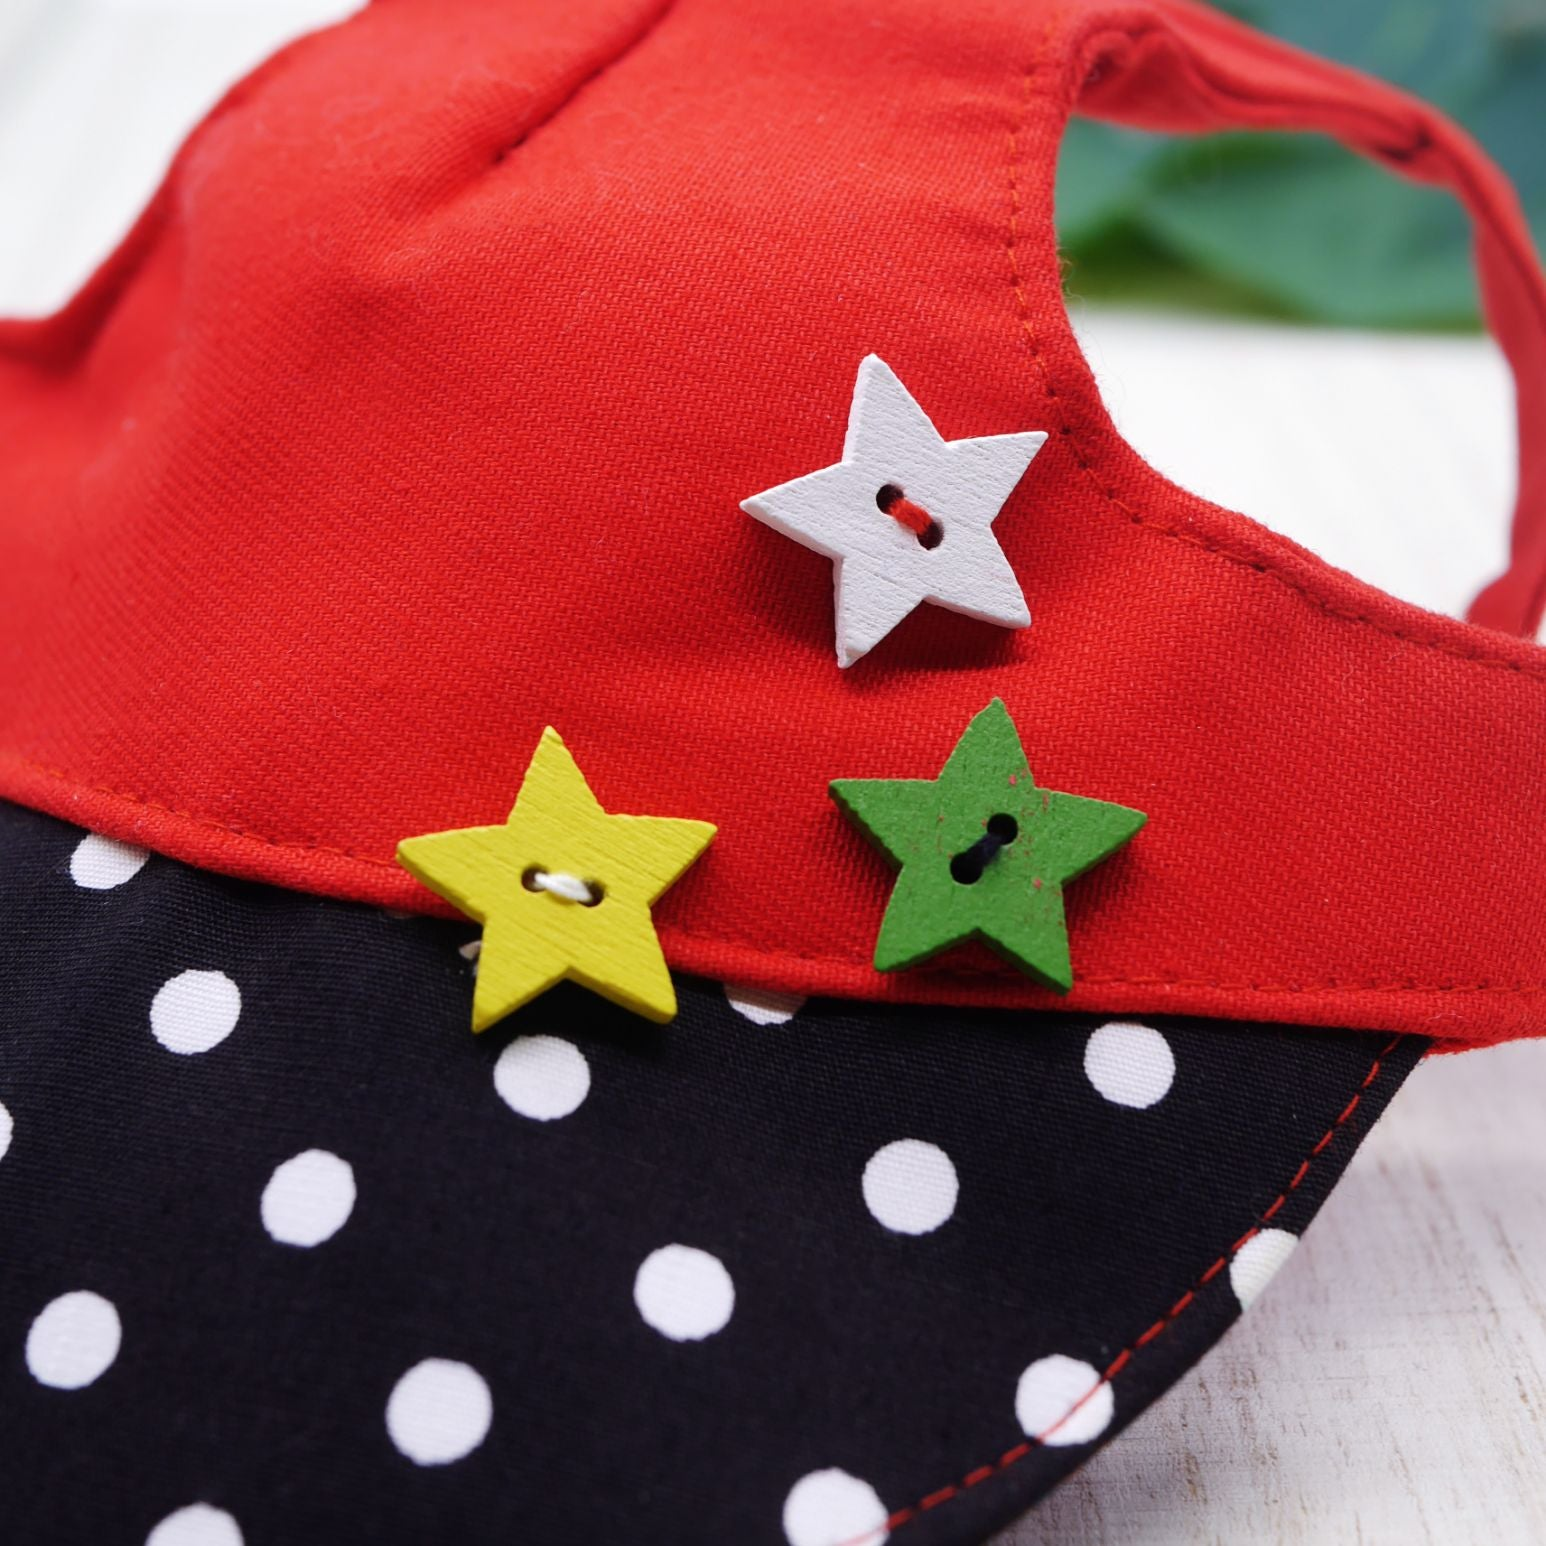 Walking Caps For Him - Polka Pop with Stars - The Pet's Couture